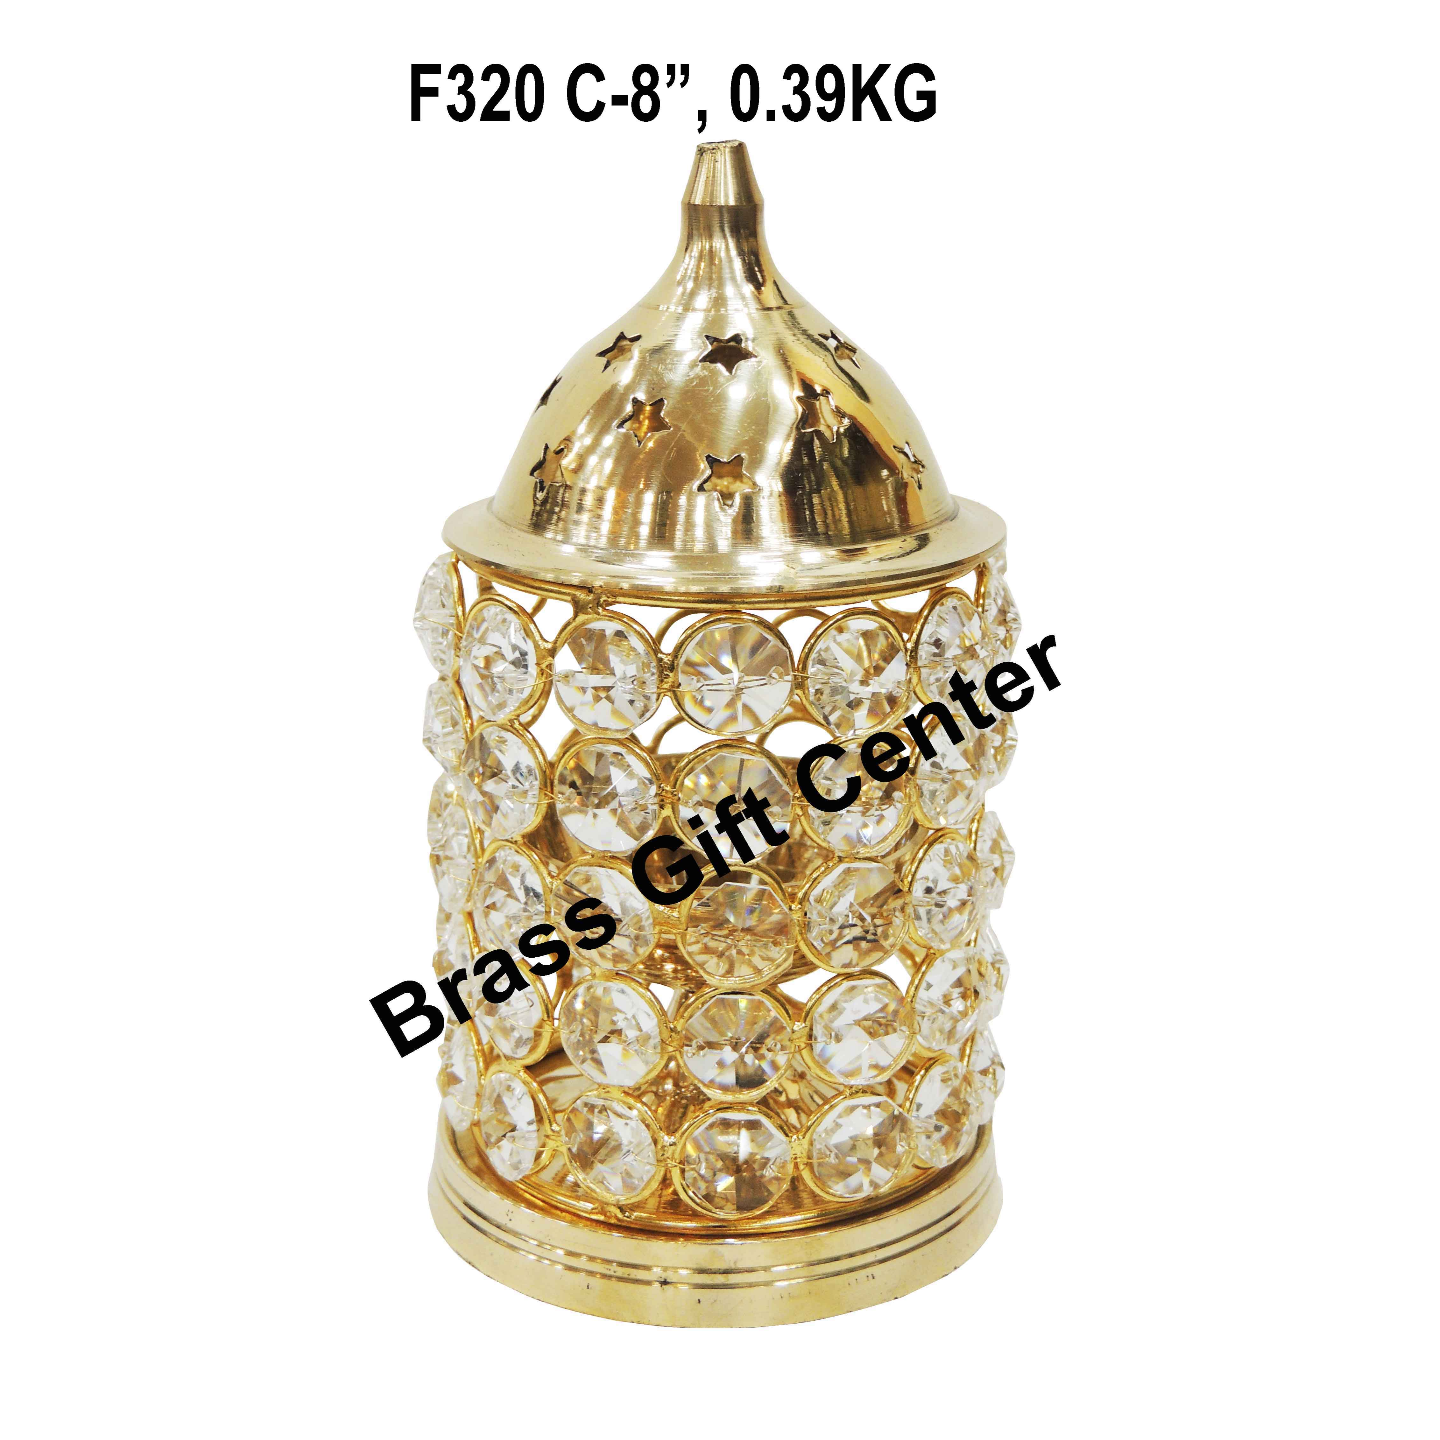 Brass Deepak With Crystal Chimney - 8 inch F320 C